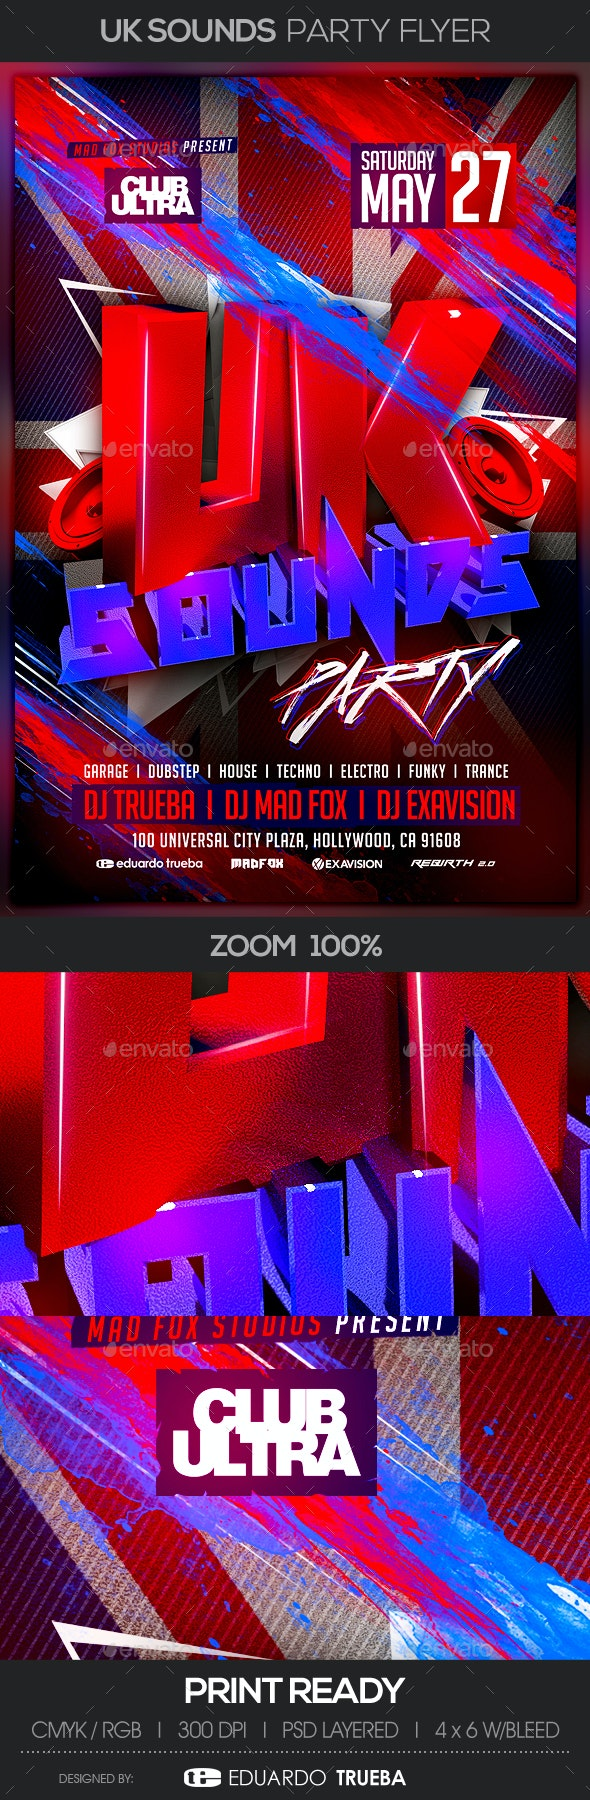 UK Sounds Party Flyer - Clubs & Parties Events